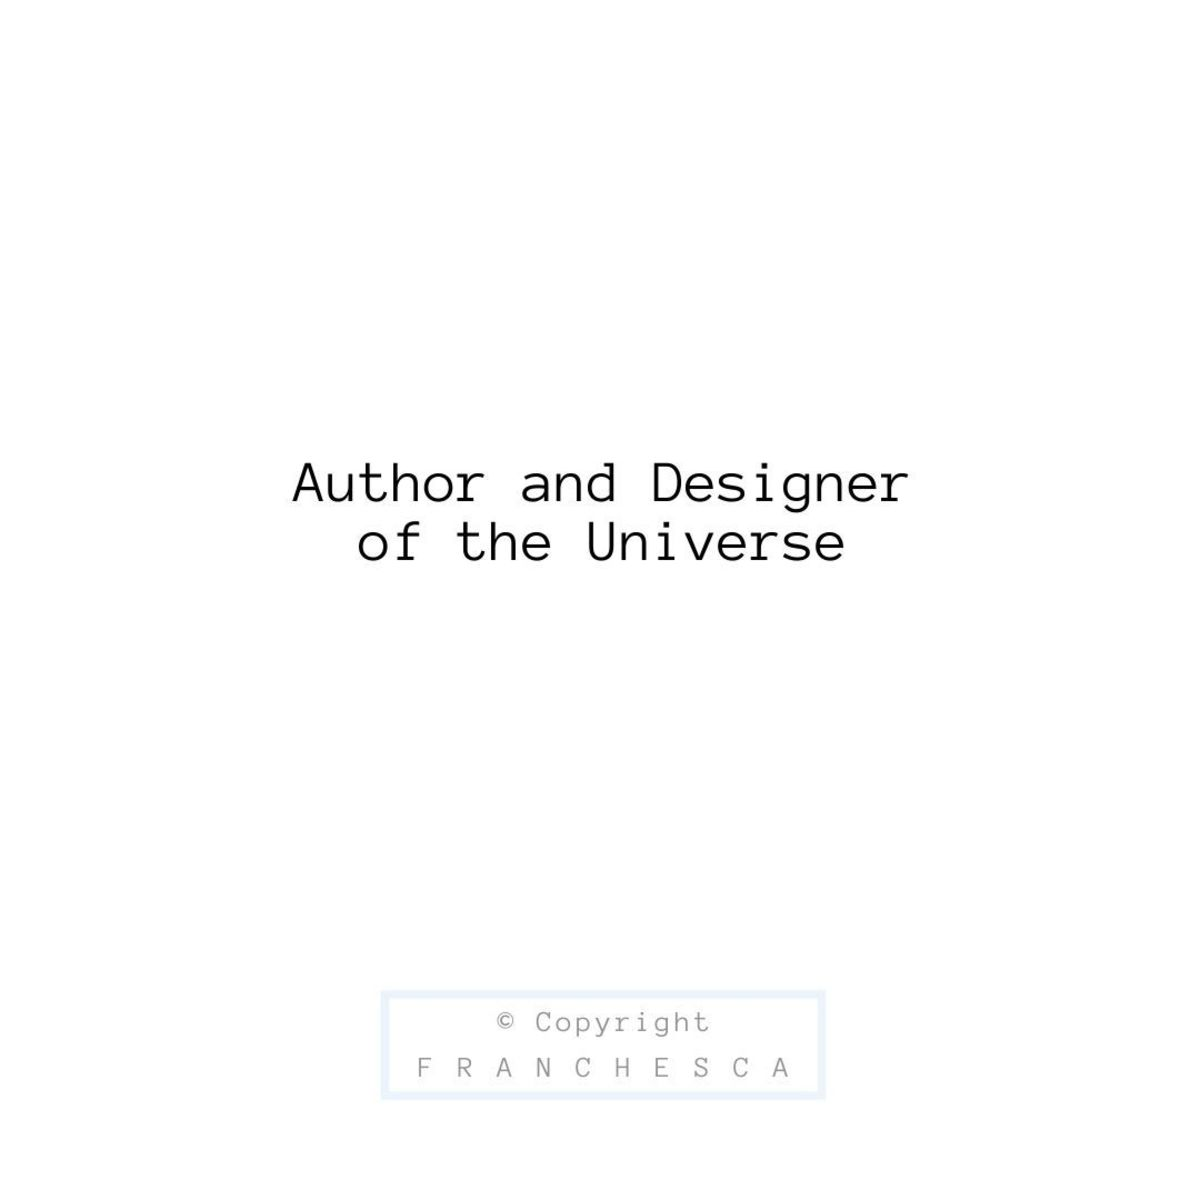 128th-article-author-and-designer-of-the-universe